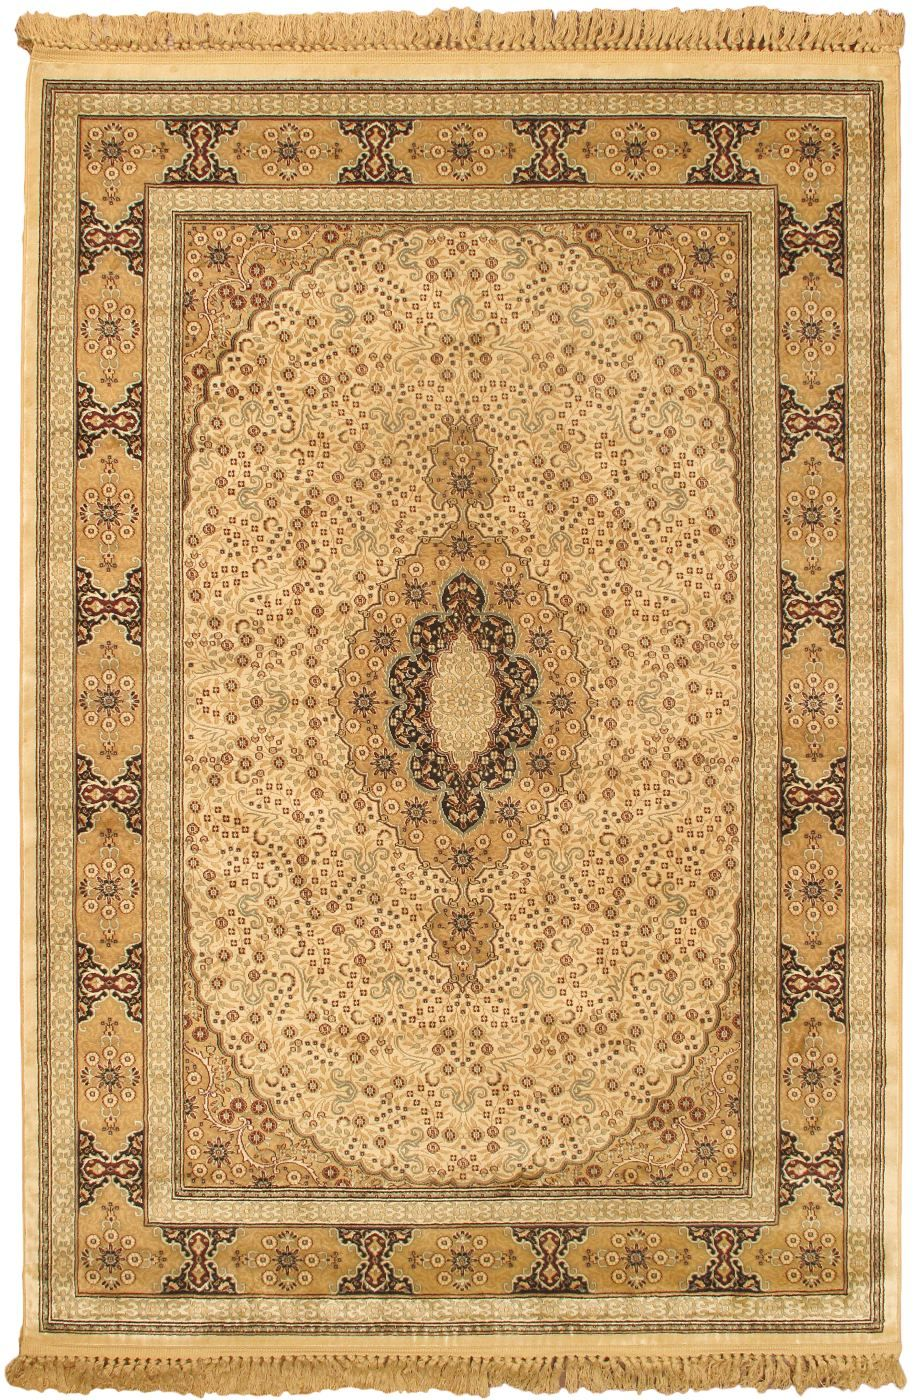 ecarpet gallery kashan kashmir traditional area rug collection